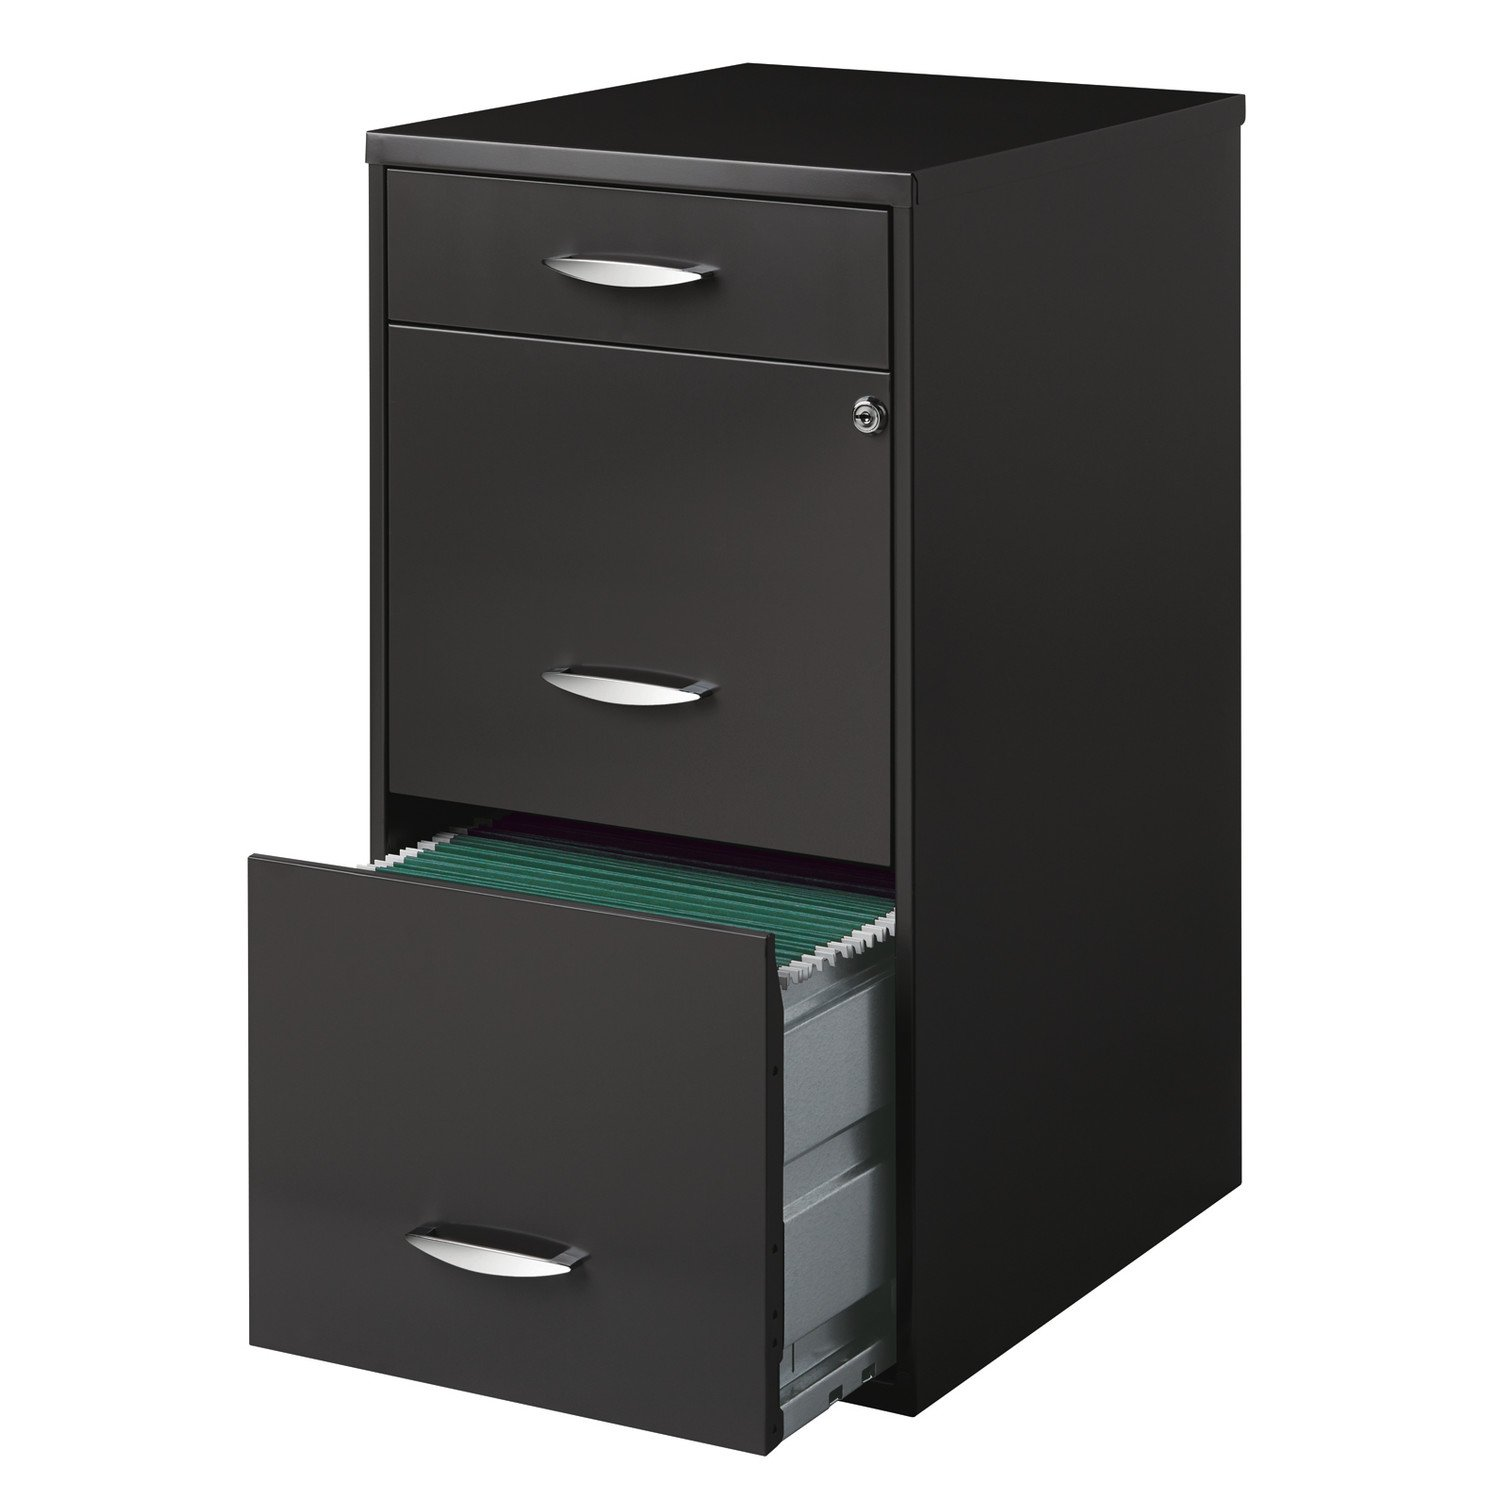 Amazon.com: Hirsh SOHO 3 Drawer File Cabinet in Charcoal: Home ...